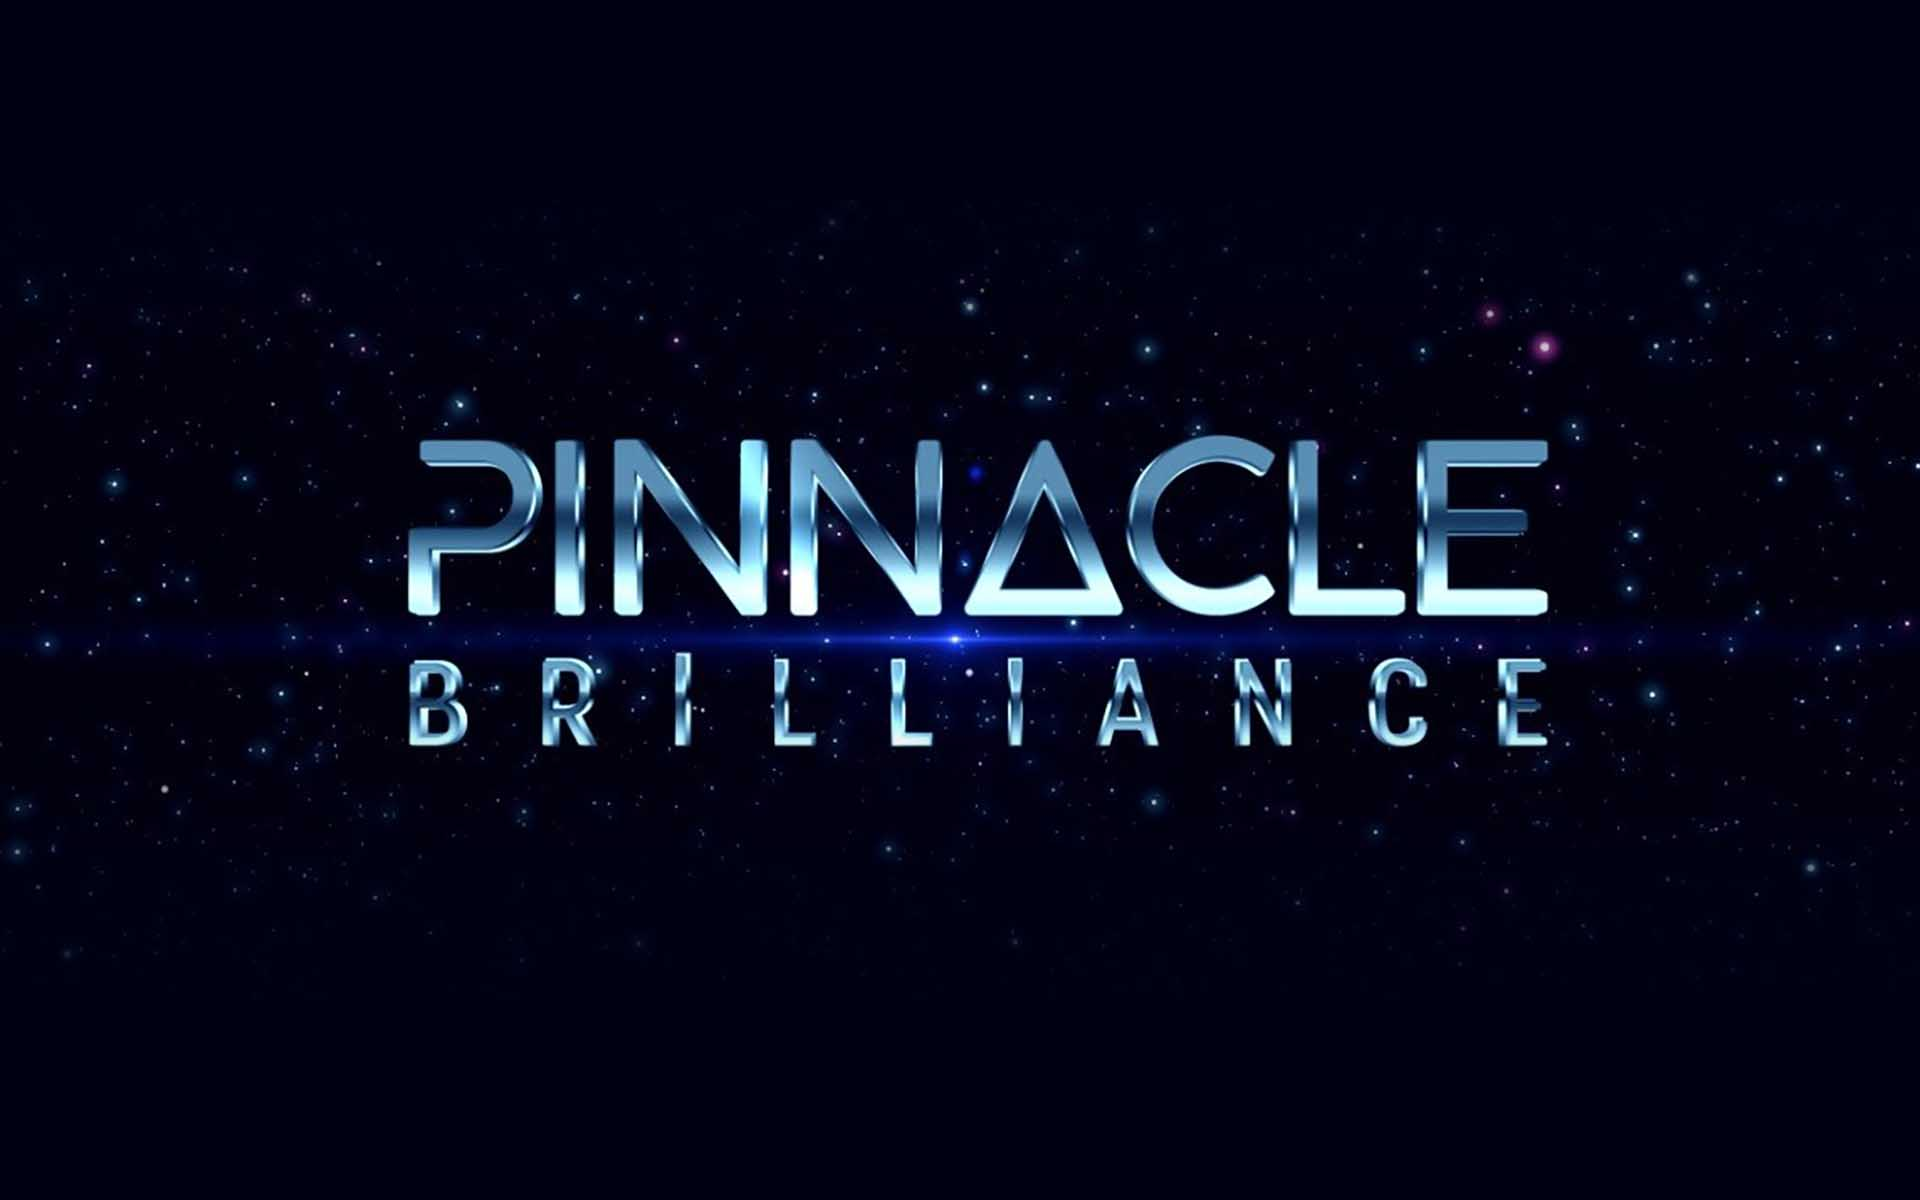 David Drake joins the advisory board of Pinnacle Brilliance Systems